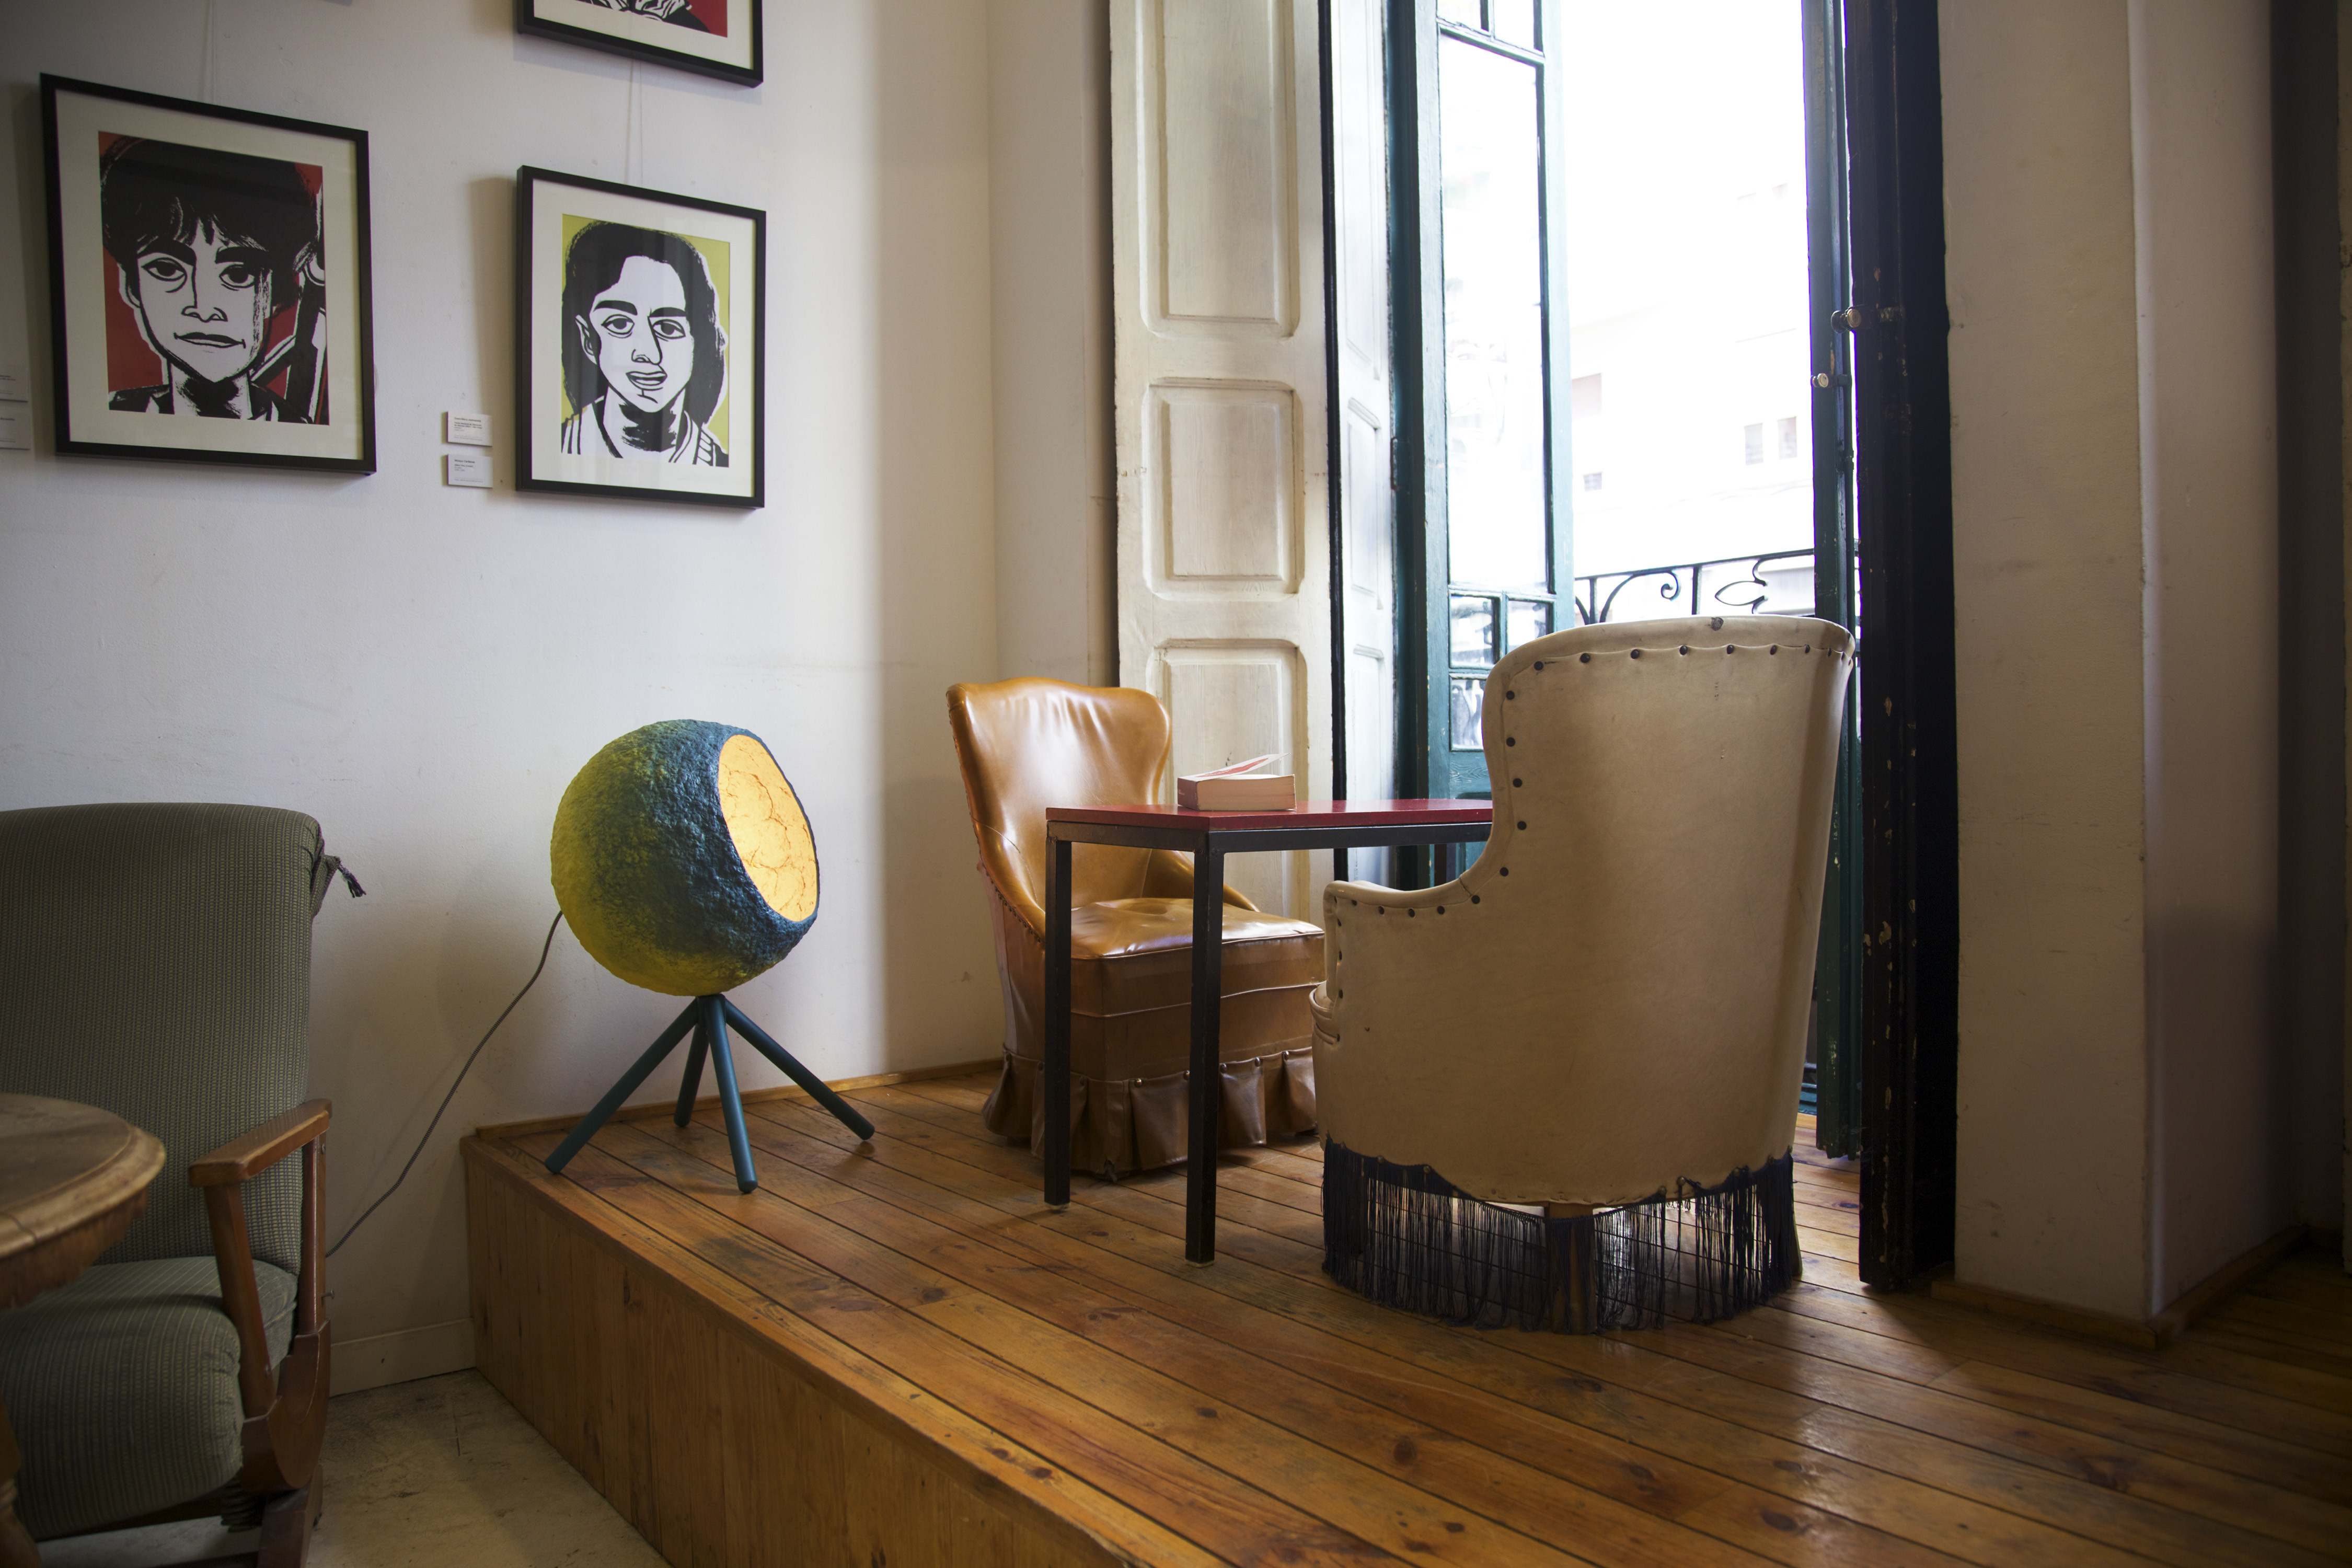 Pluto lamp in Cafe Ubik in Valencia, Spain